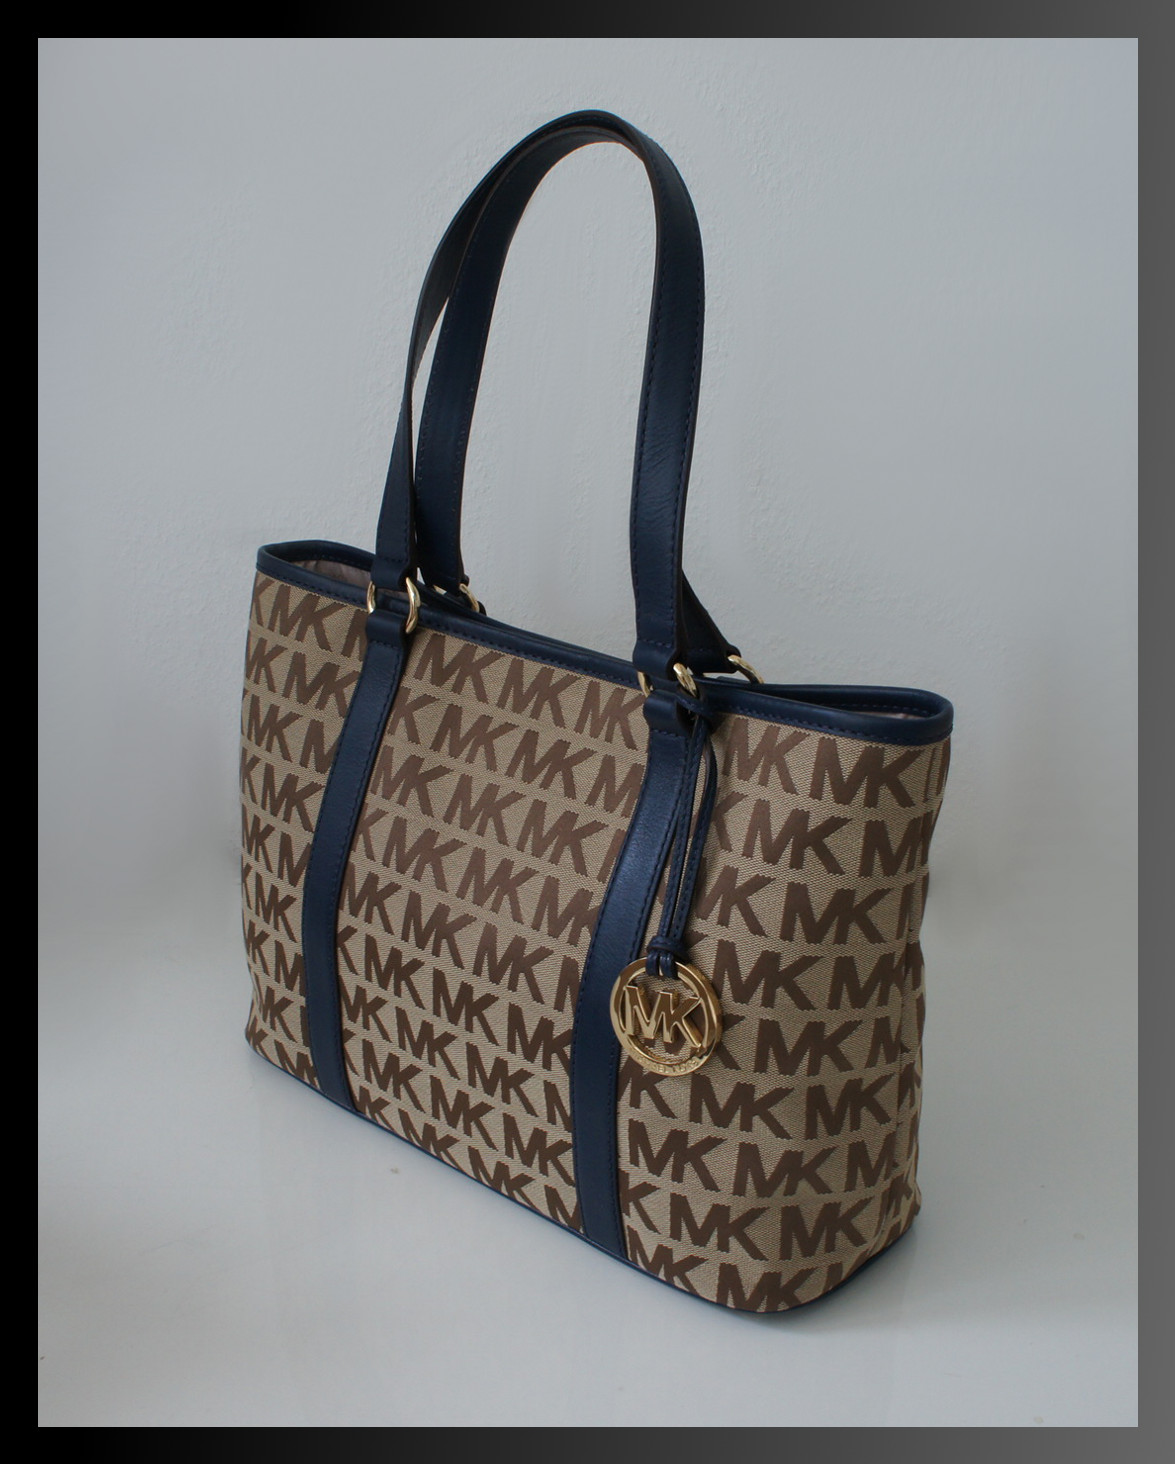 michael kors tasche summer tote handtasche leder dunkelblau beige neu ebay. Black Bedroom Furniture Sets. Home Design Ideas